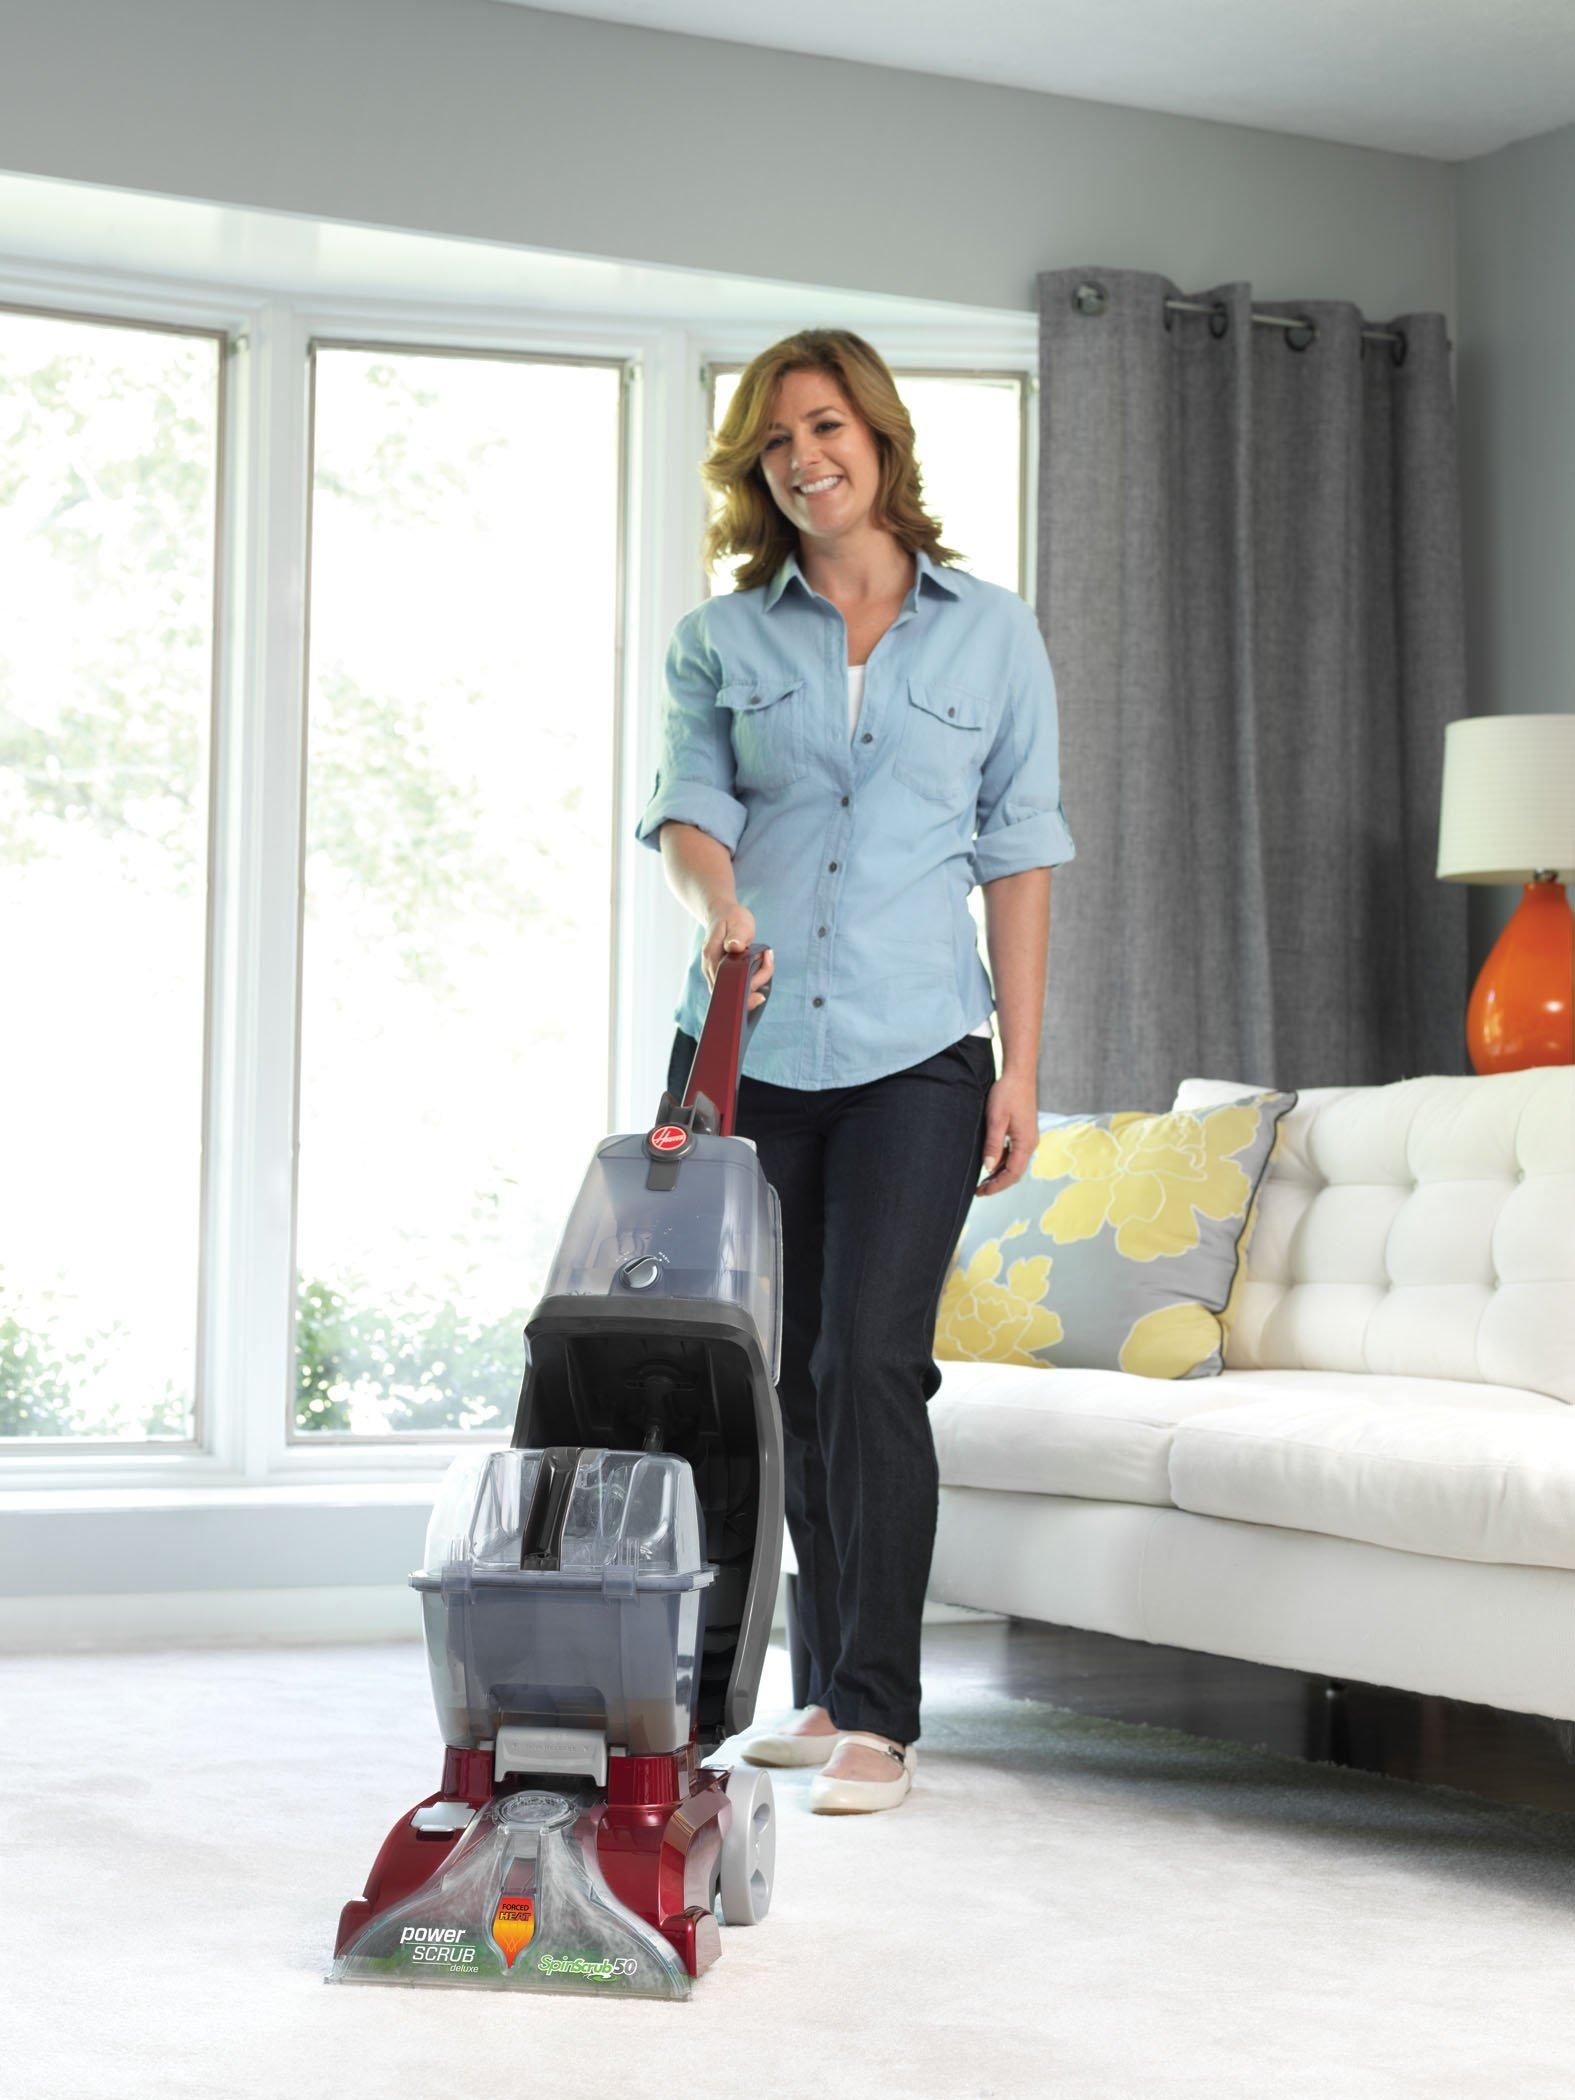 Power Scrub Deluxe Carpet Cleaner  FH50150NC  Hoover